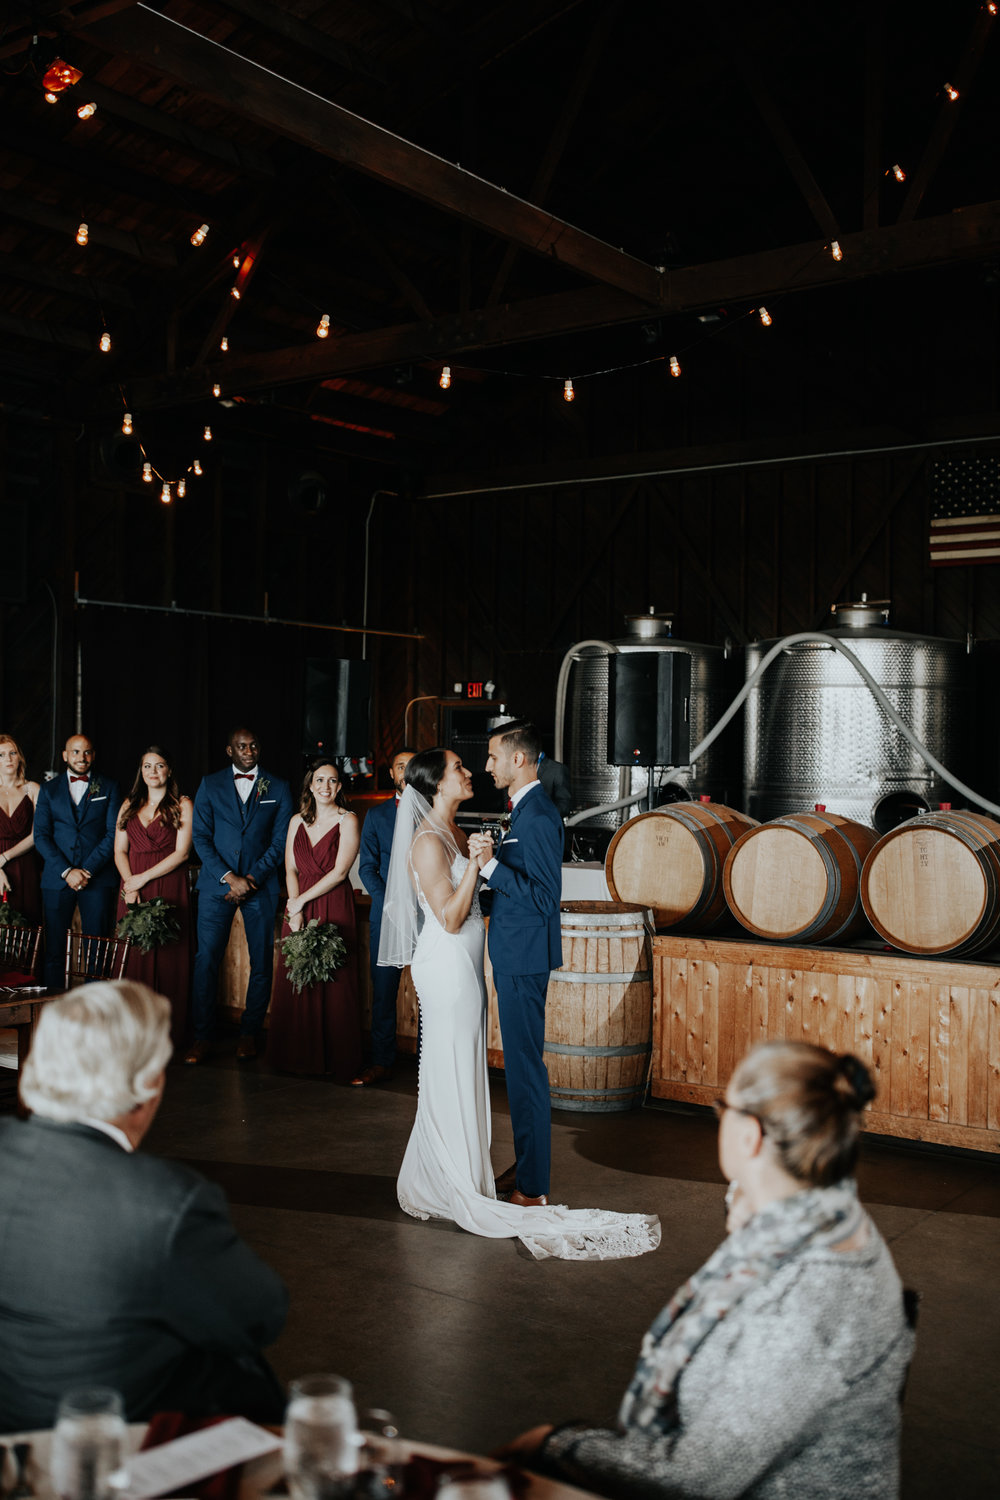 Saltwater-Farm-Vineyard-Wedding-62.jpg